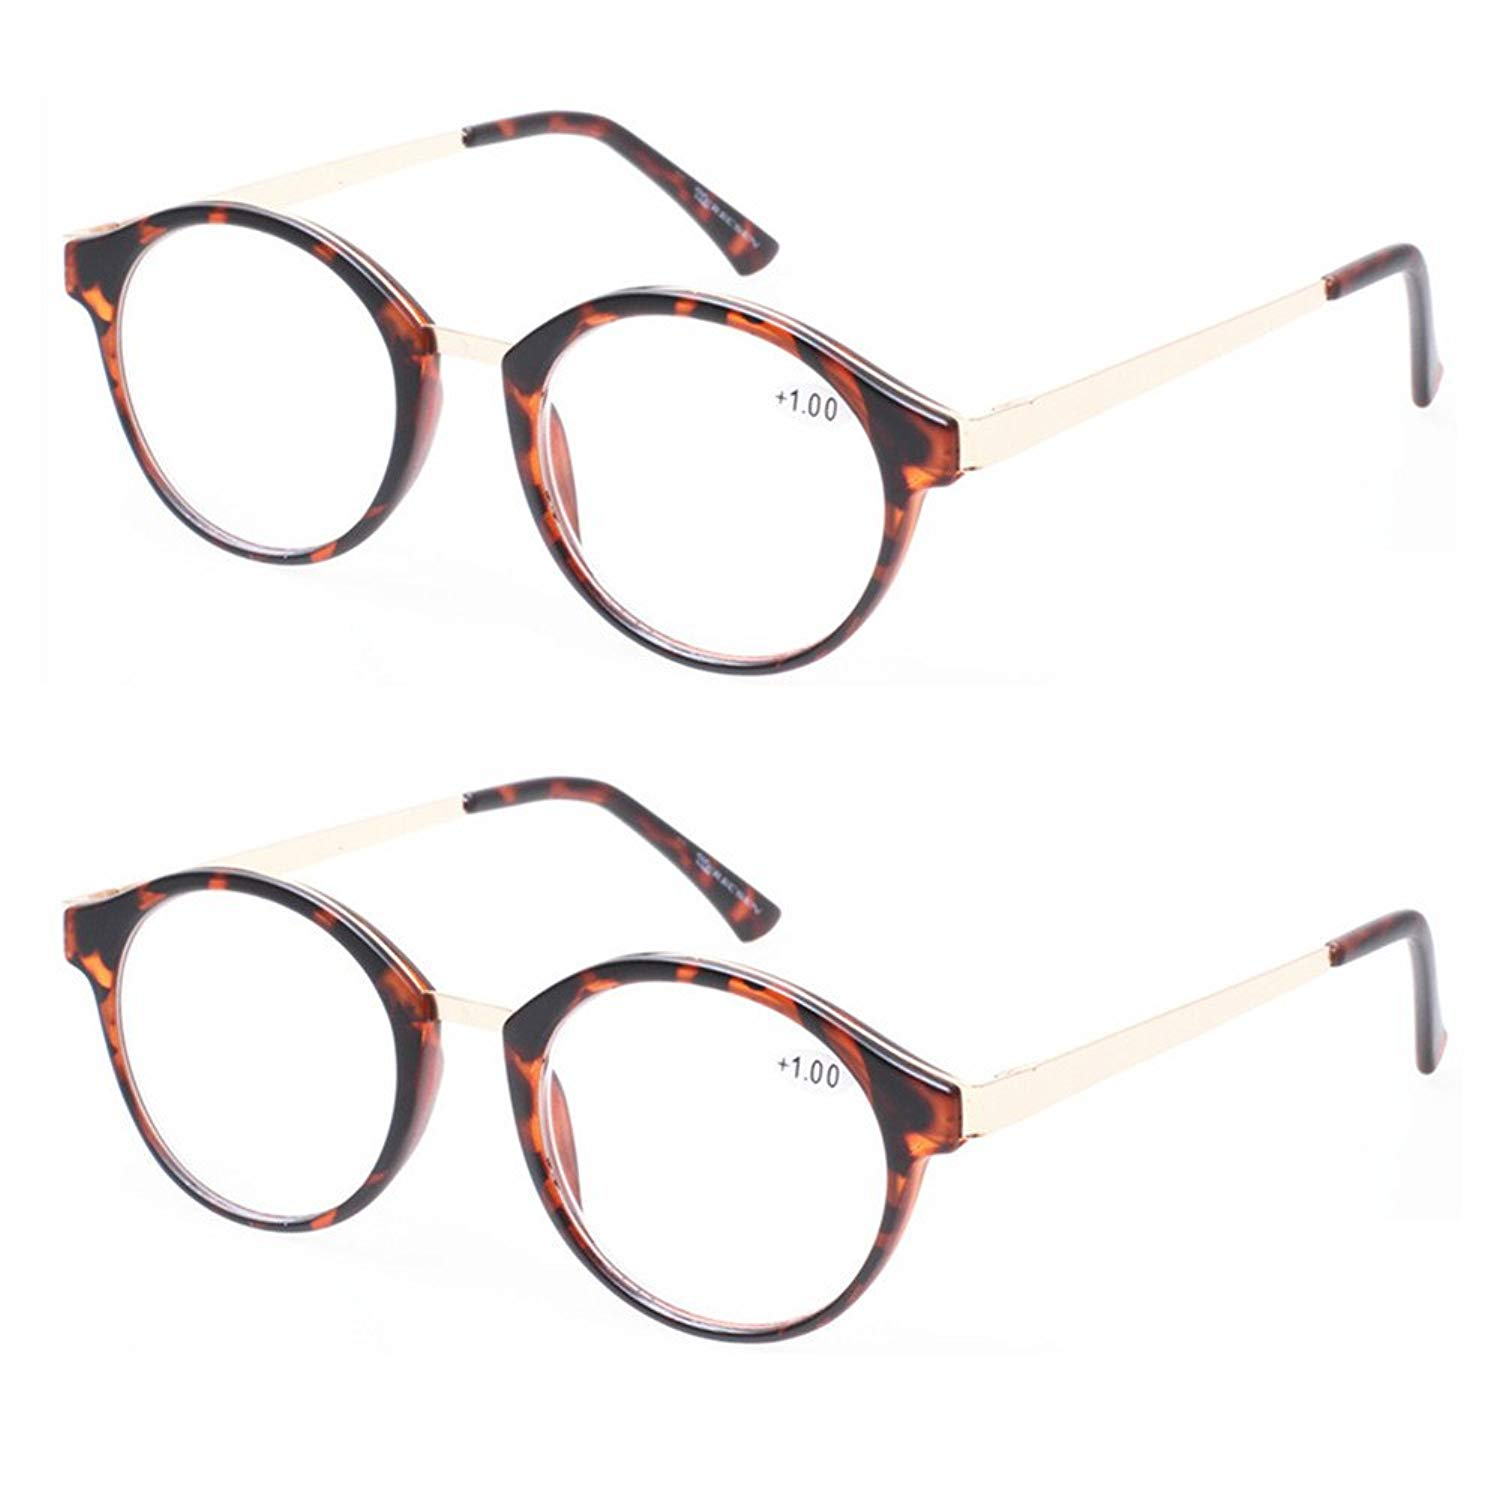 5d079b9c452 Get Quotations · READING GLASSES 2 Pack Vintage Metal Round Reading Glasses  Classic Retro Readers